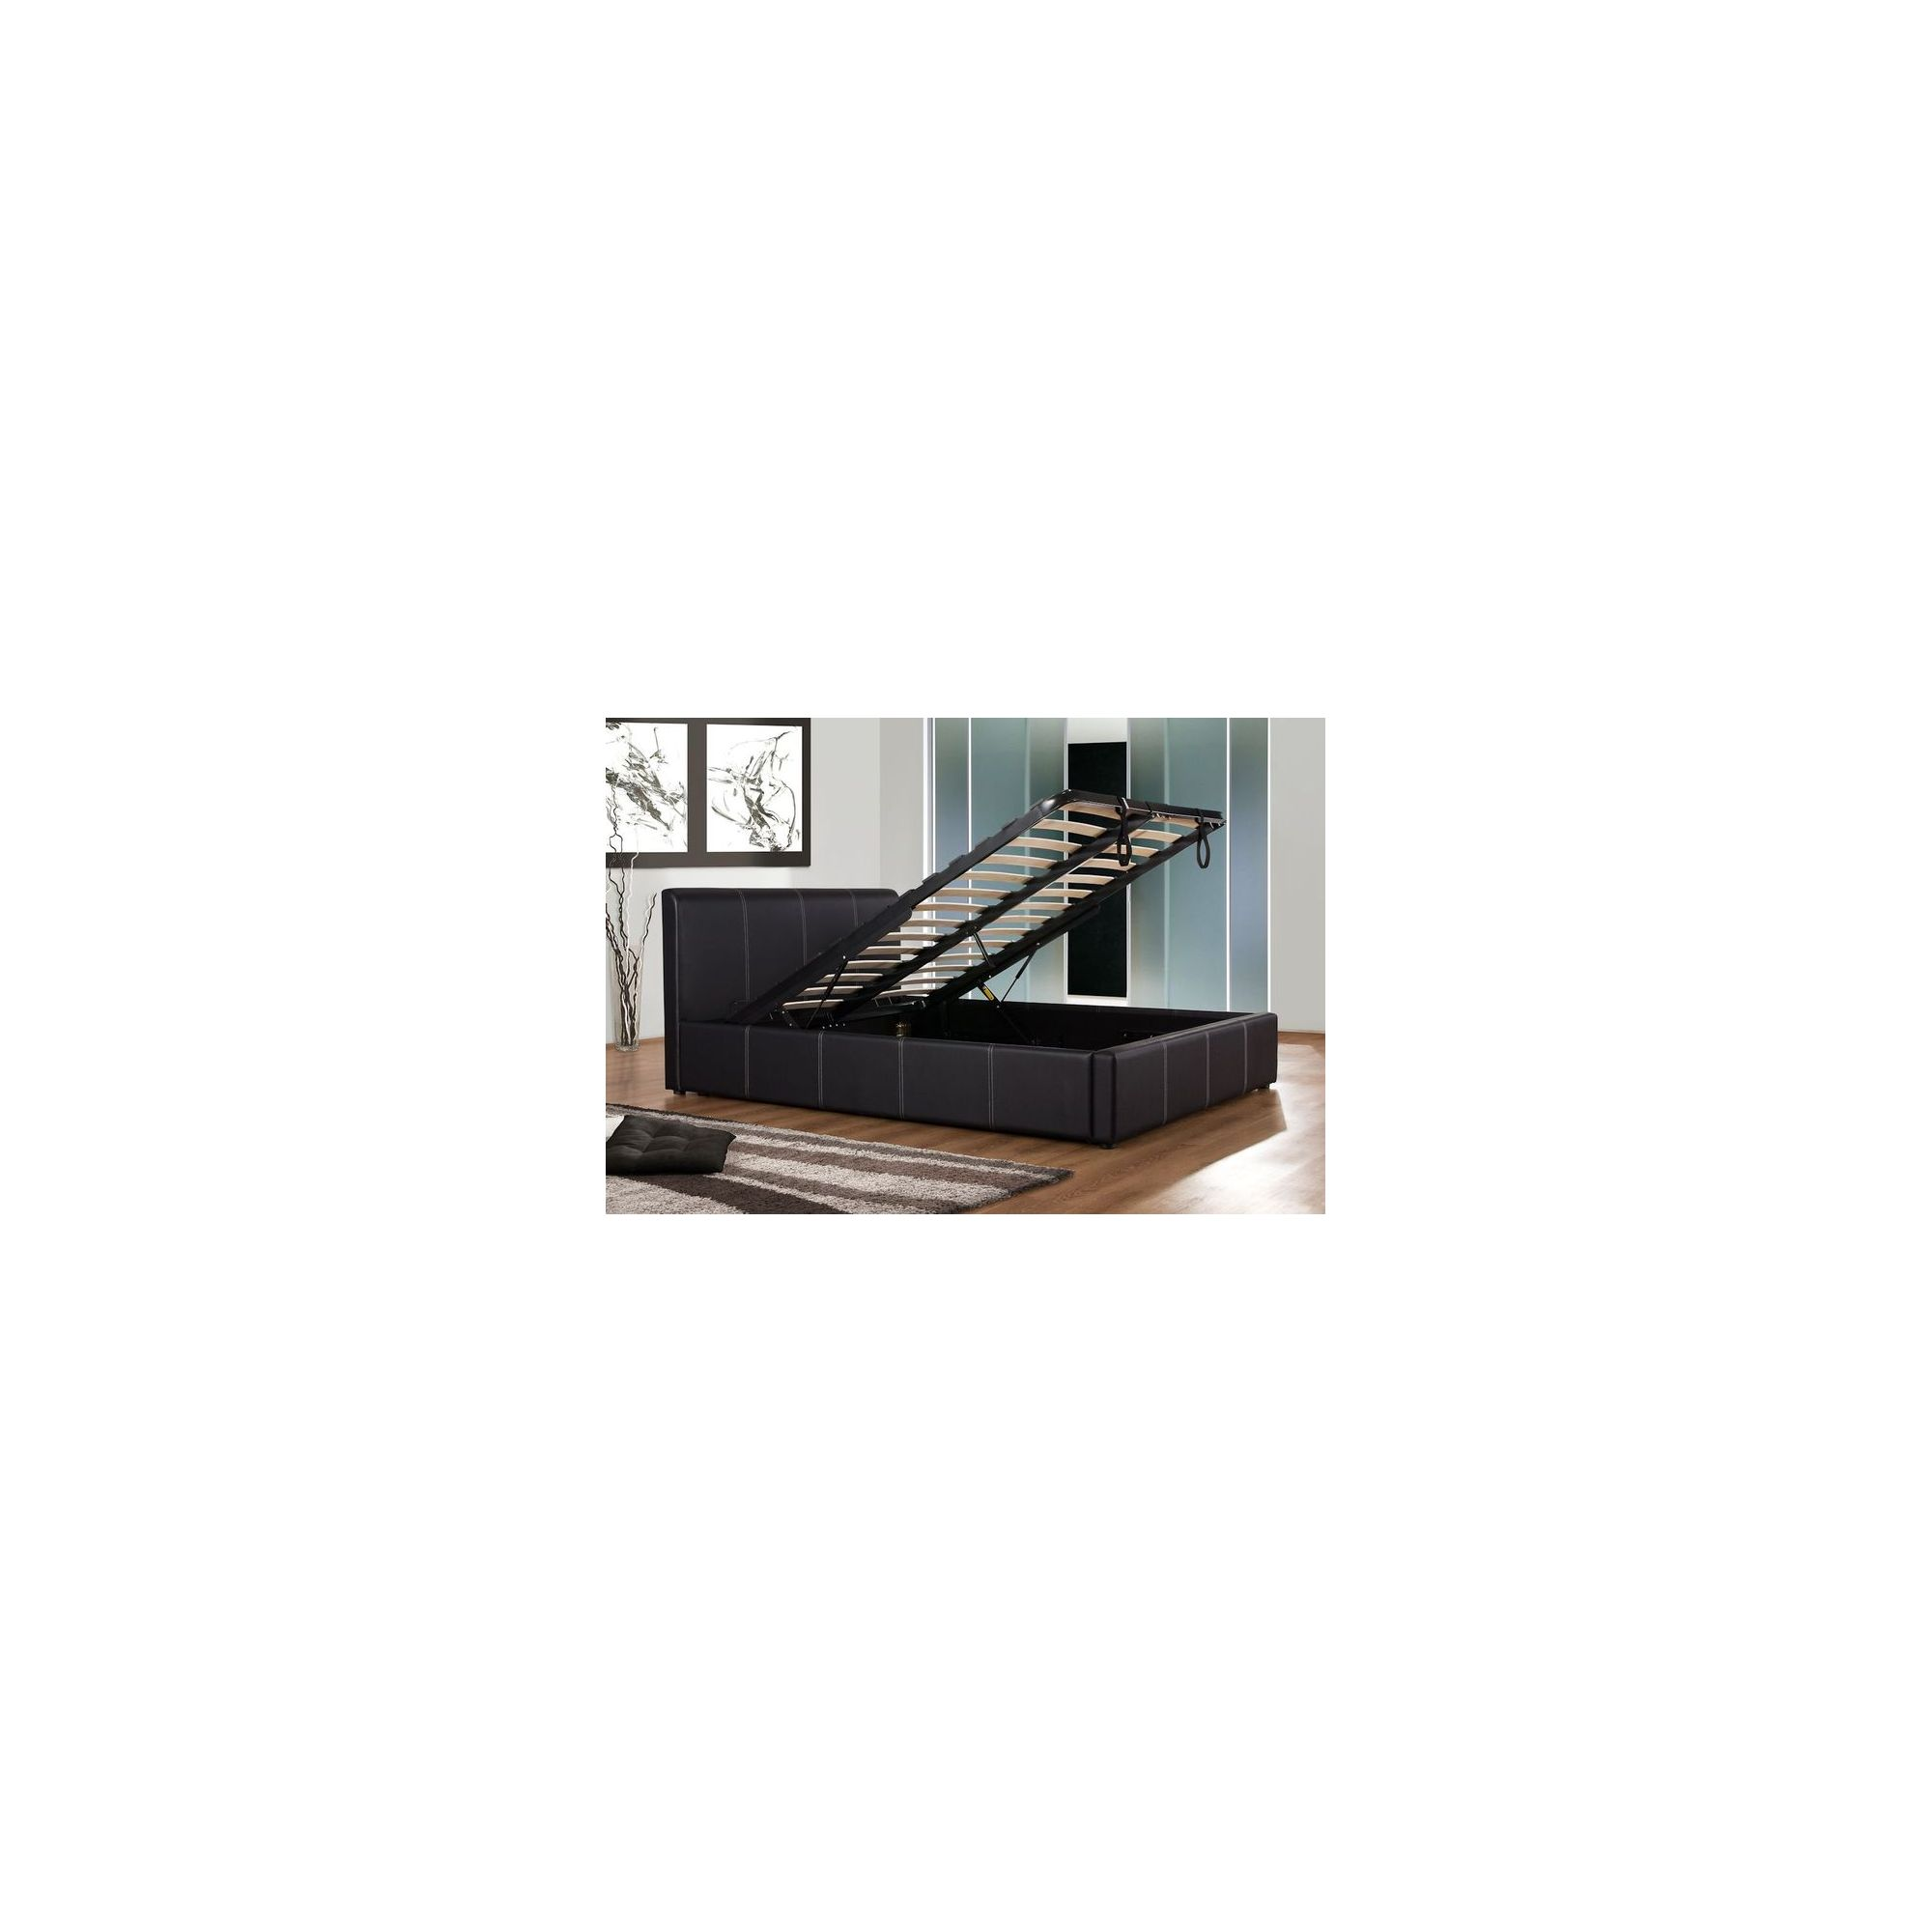 Birlea Ottoman Bed Frame - Single/Black at Tesco Direct